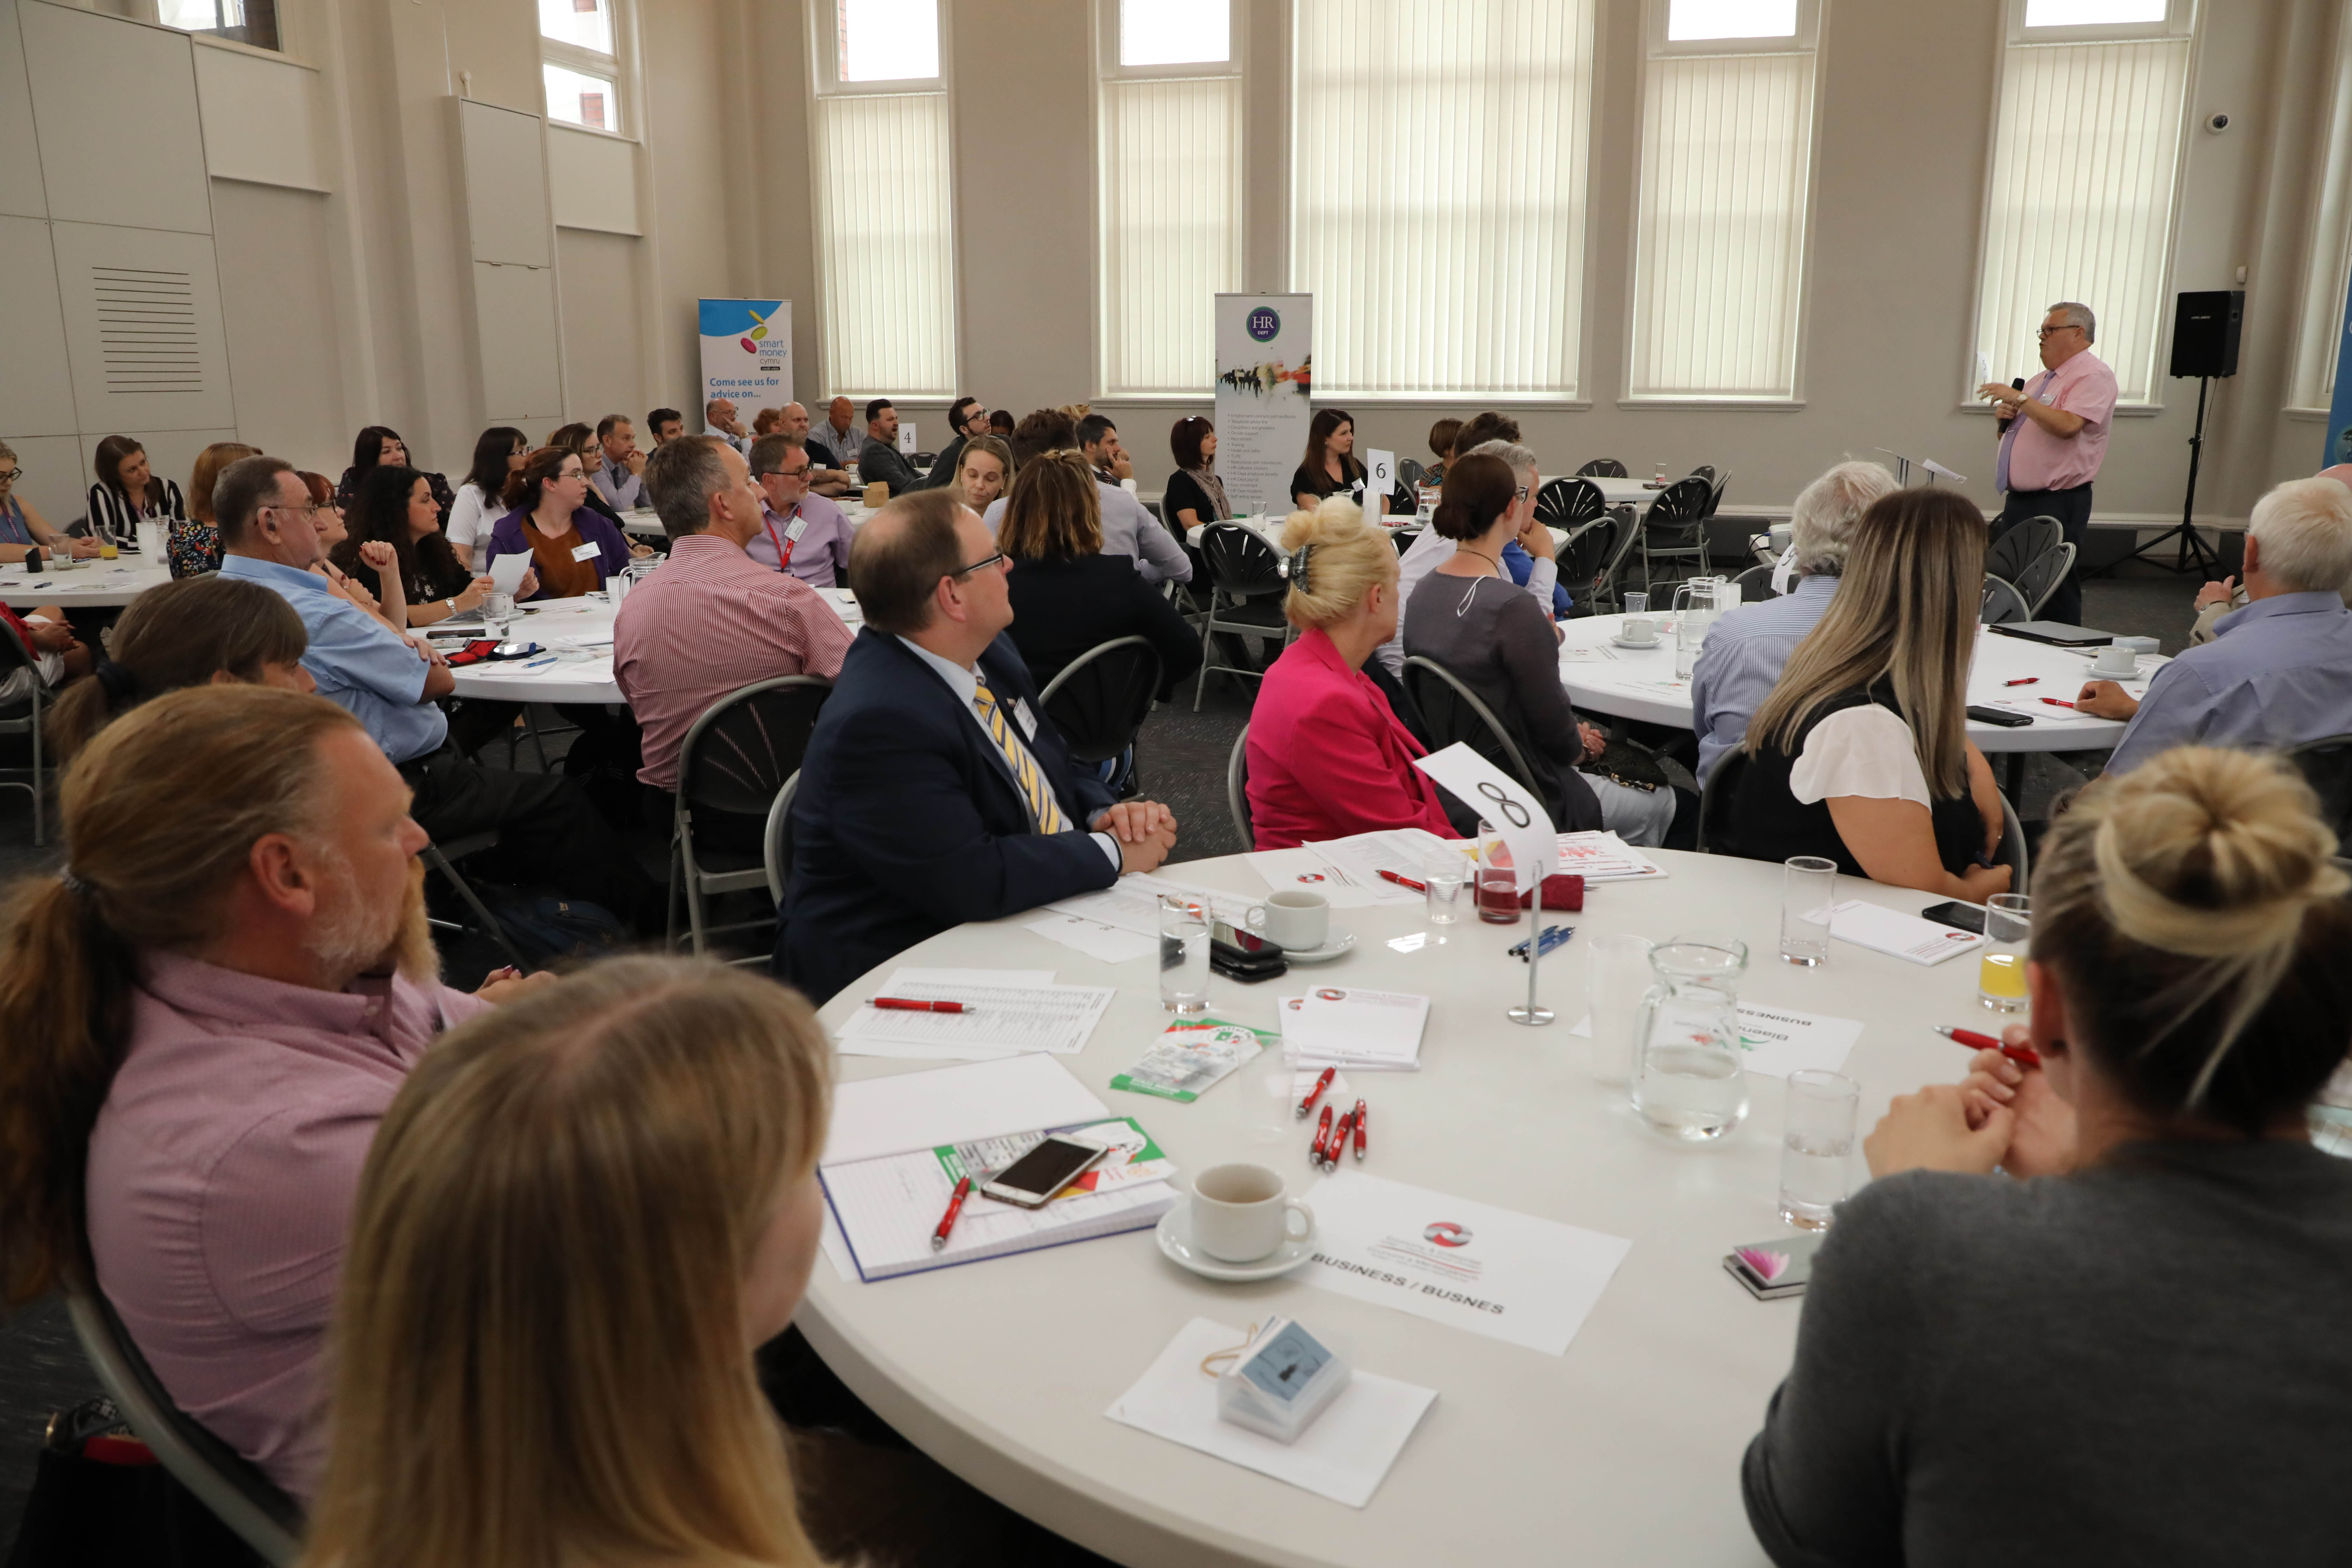 Torfaen and Blaenau Gwent businesses join forces for successful 'Meet your business neighbour' networking event